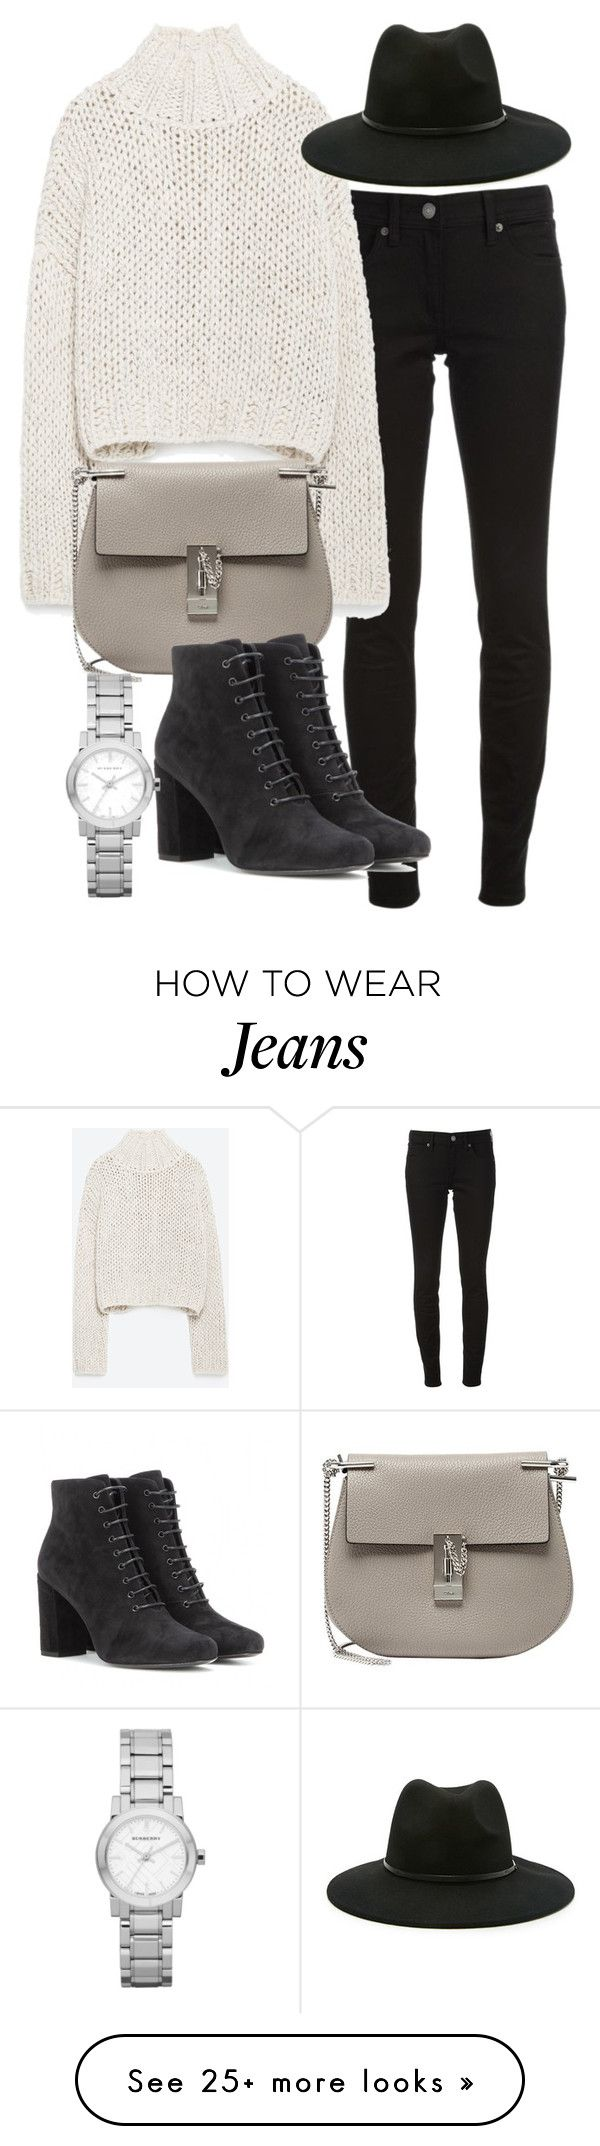 """""""Untitled #19396"""" by florencia95 on Polyvore featuring Burberry, Zara, Forever 21, Chloé and Yves Saint Laurent"""